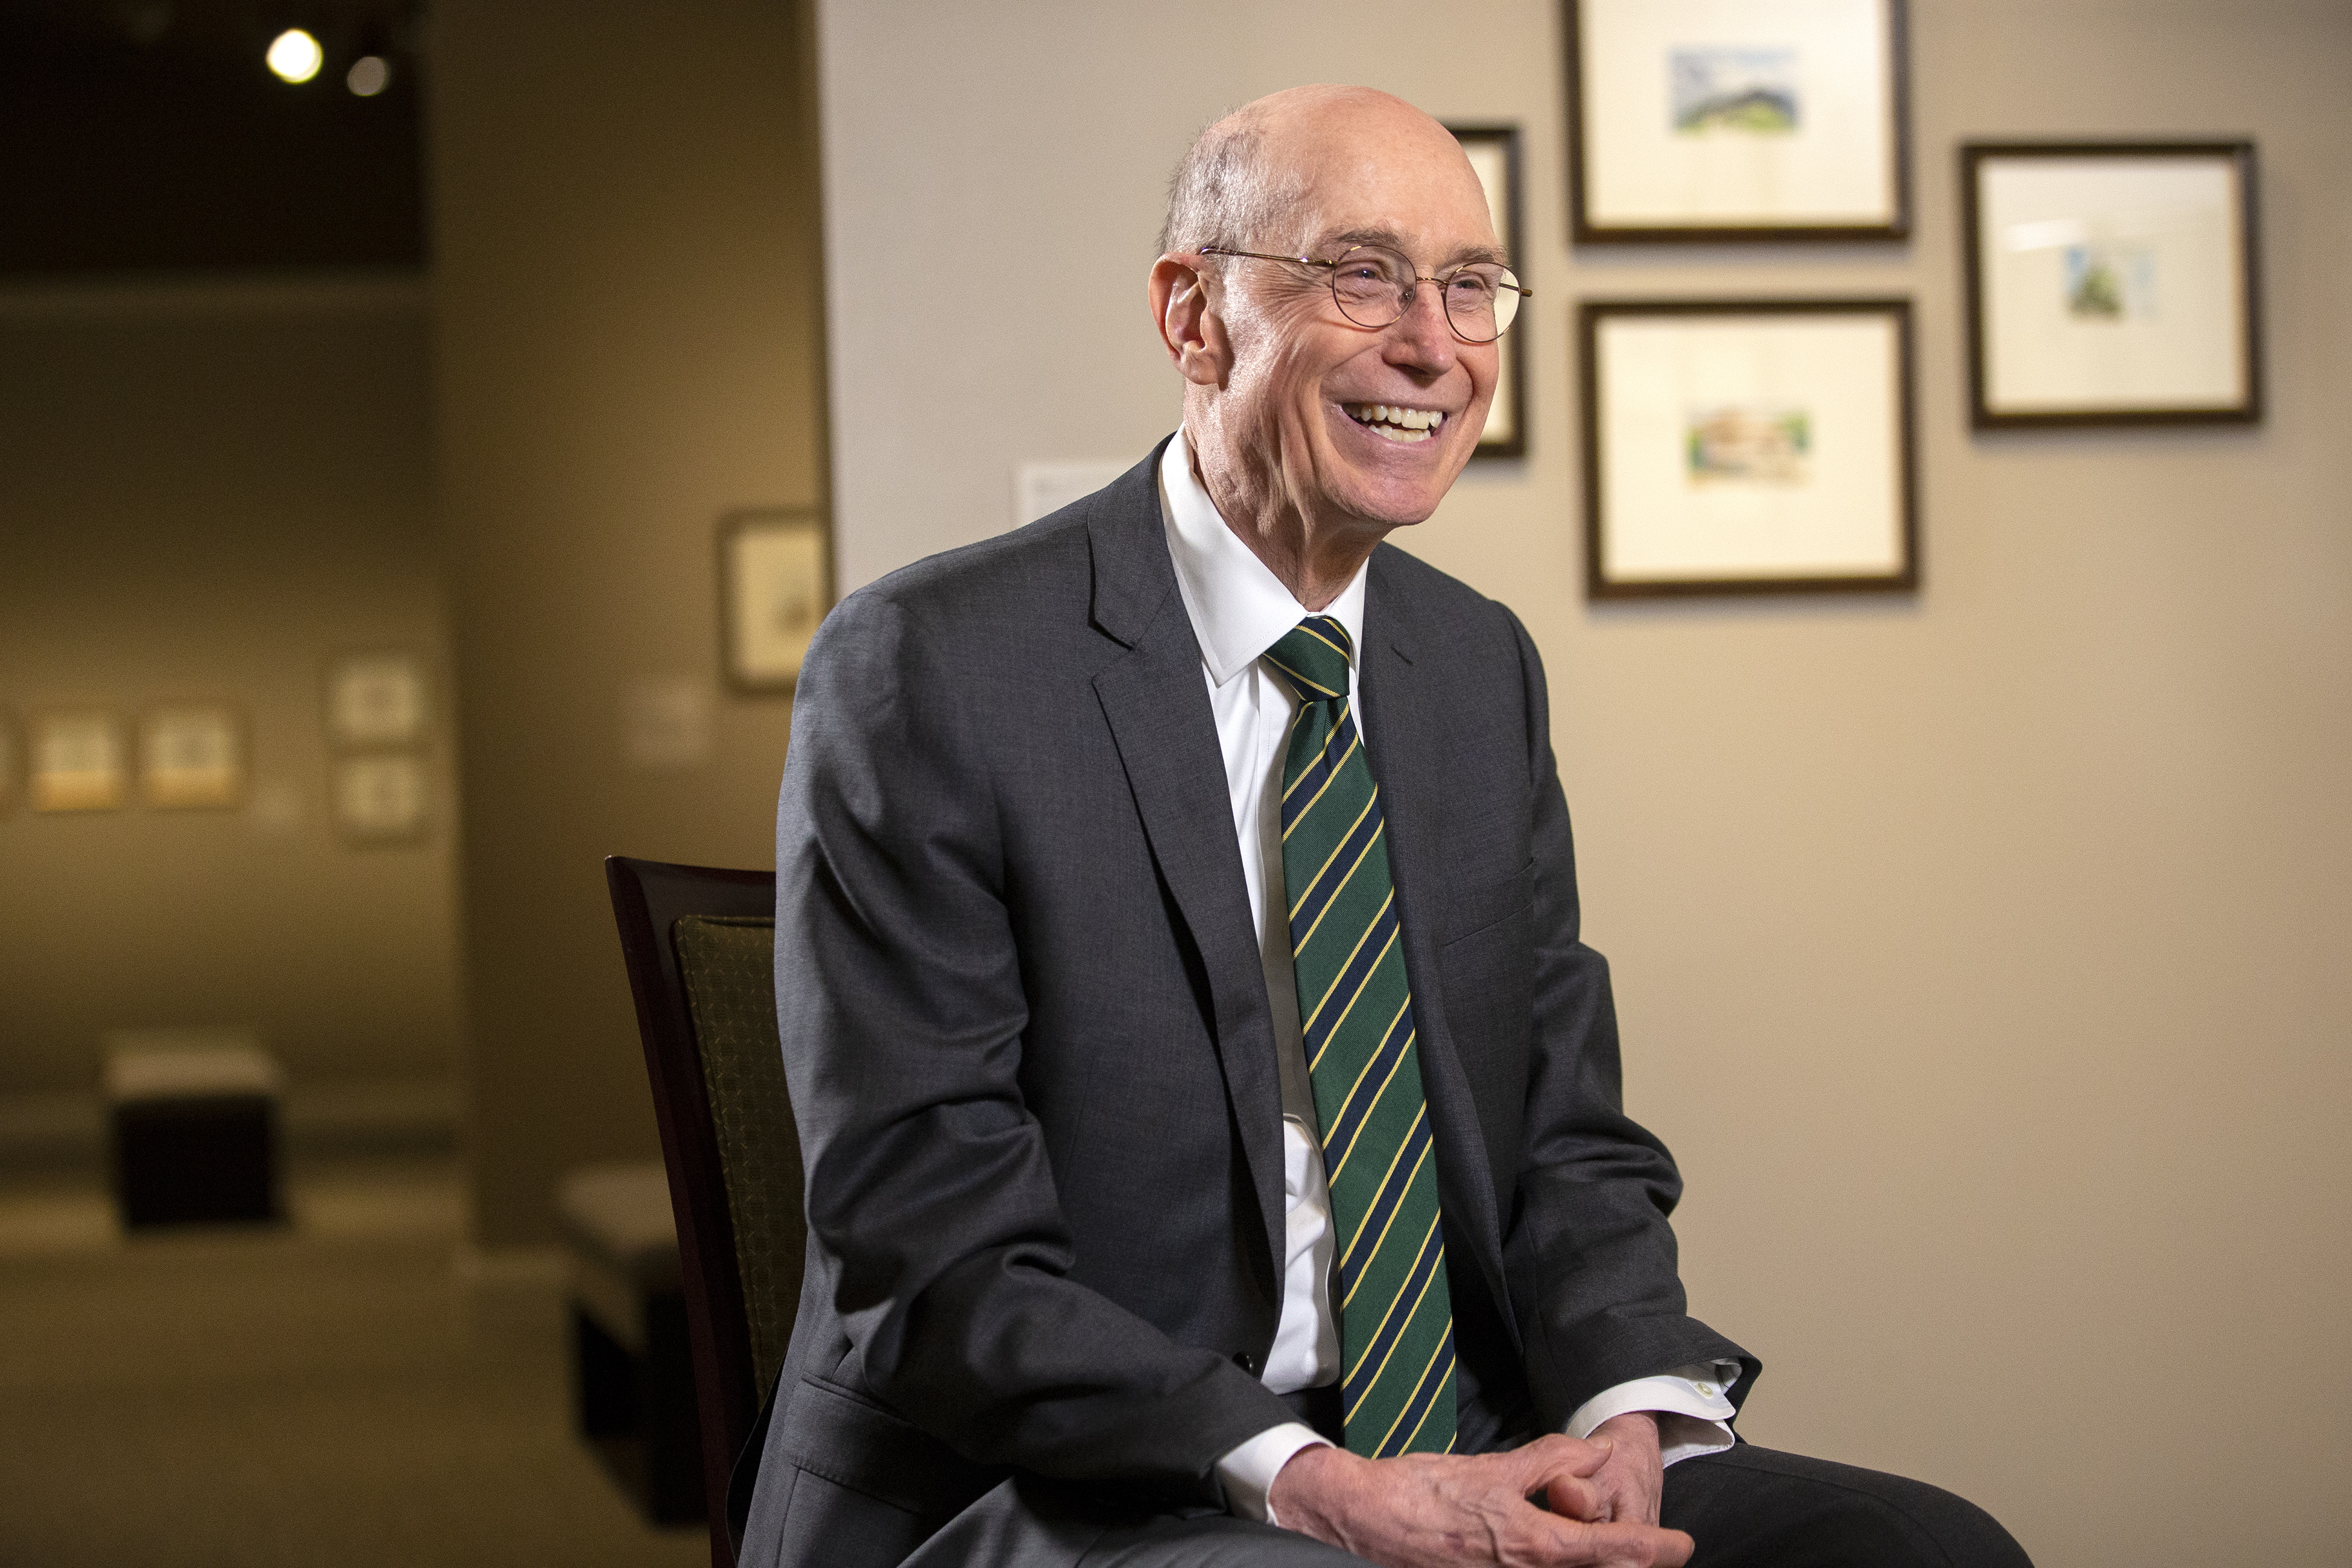 President Henry B. Eyring discusses the different pieces of his art on display in a special exhibit at the Church History Museum in Salt Lake City on Monday, Nov. 5, 2018.